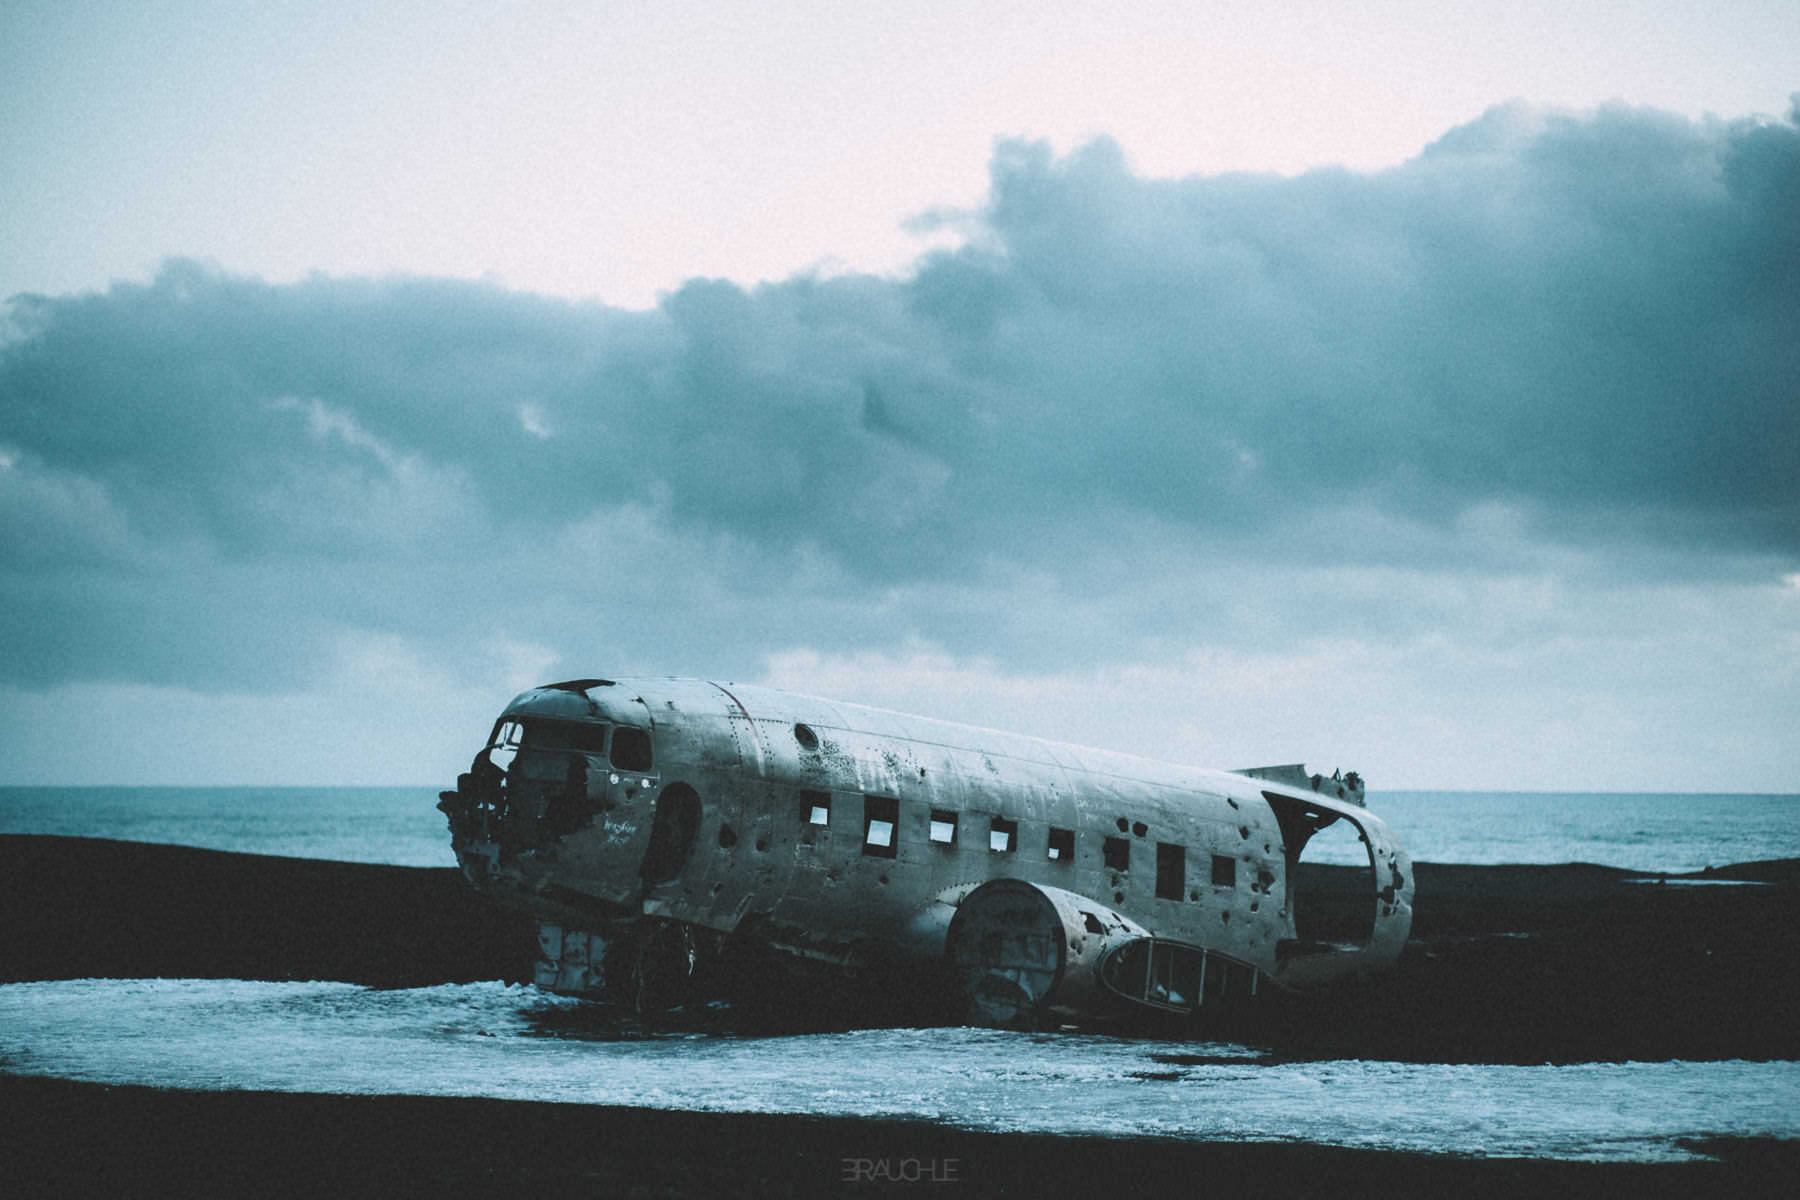 iceland-airplane-wreck-dc3-drone-0014